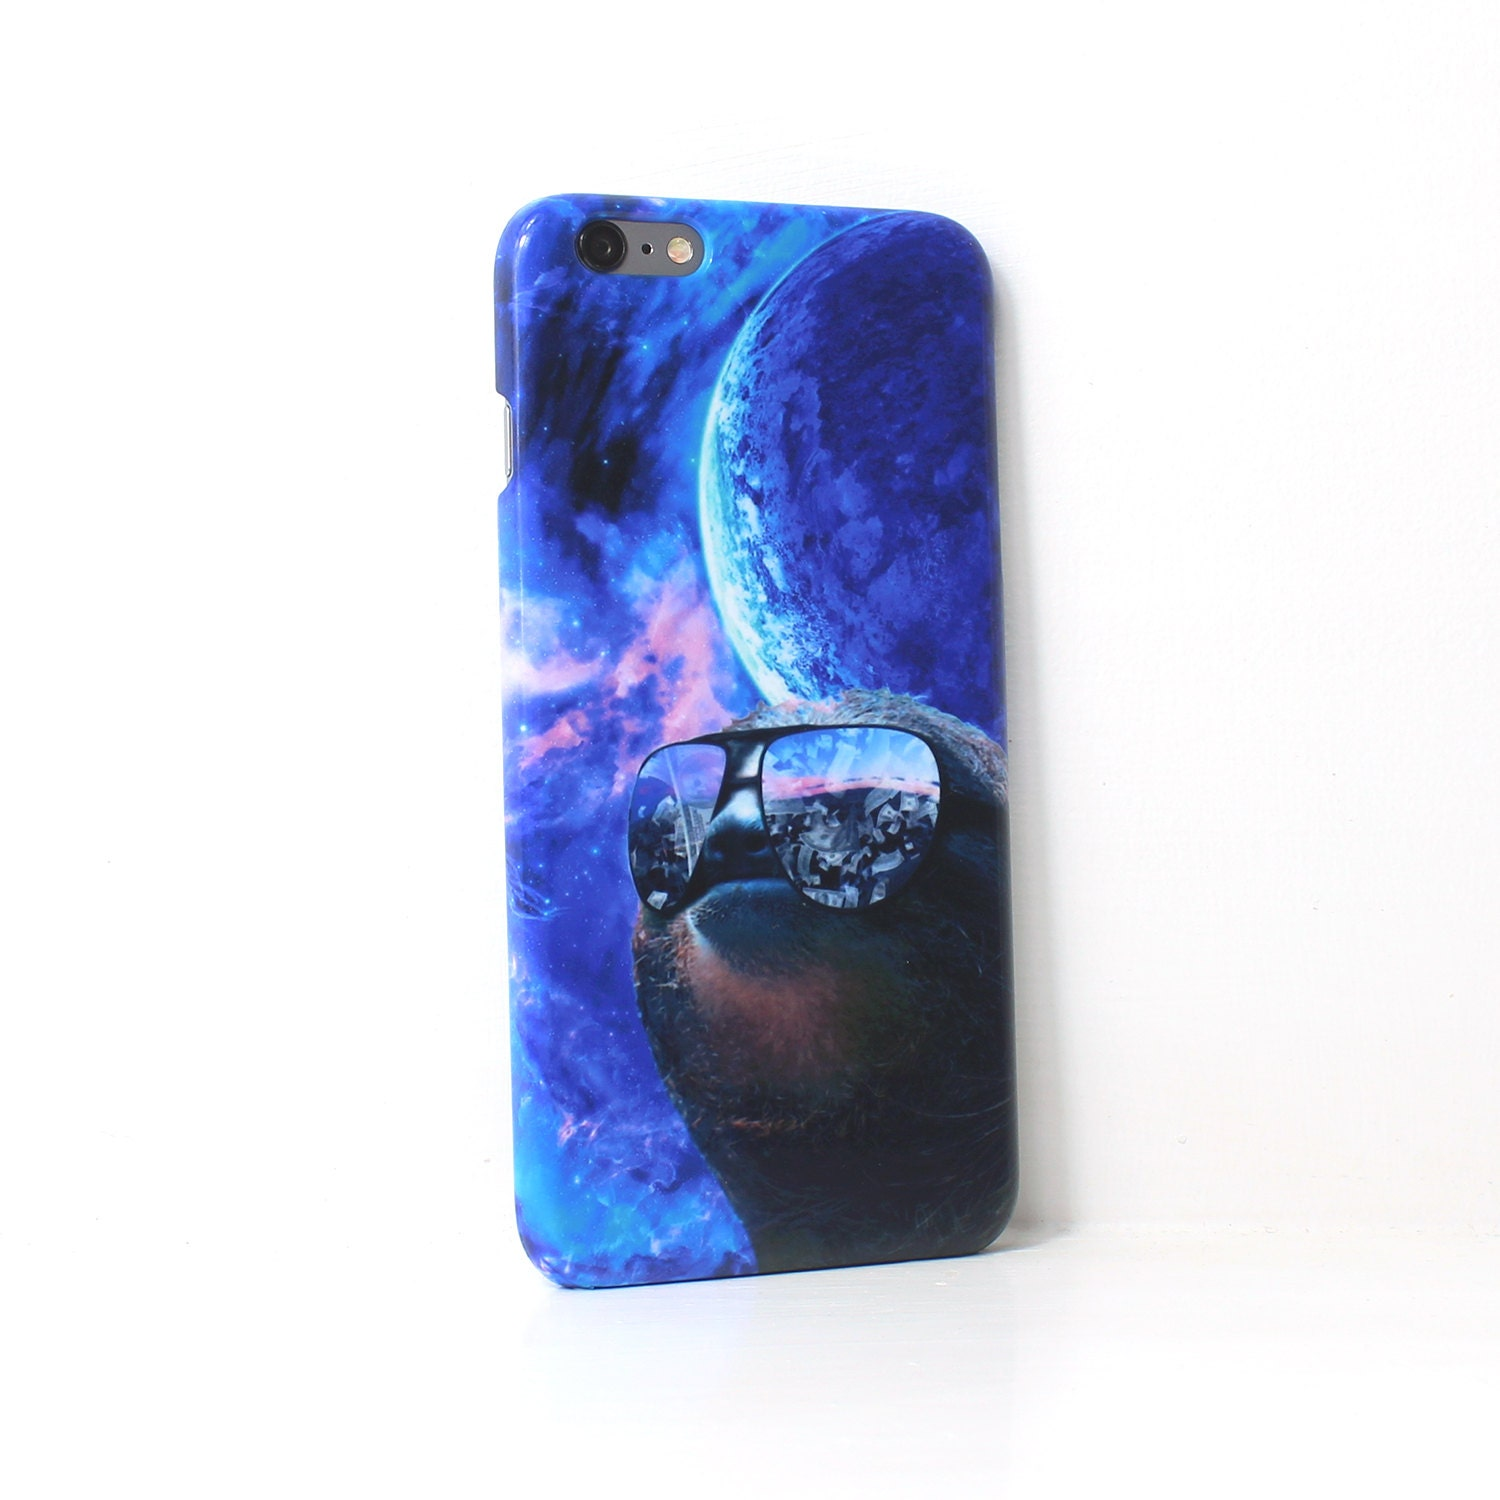 Space Sloth iPhone 6 case iPhone 6s case iPhone 6 by Memeskins